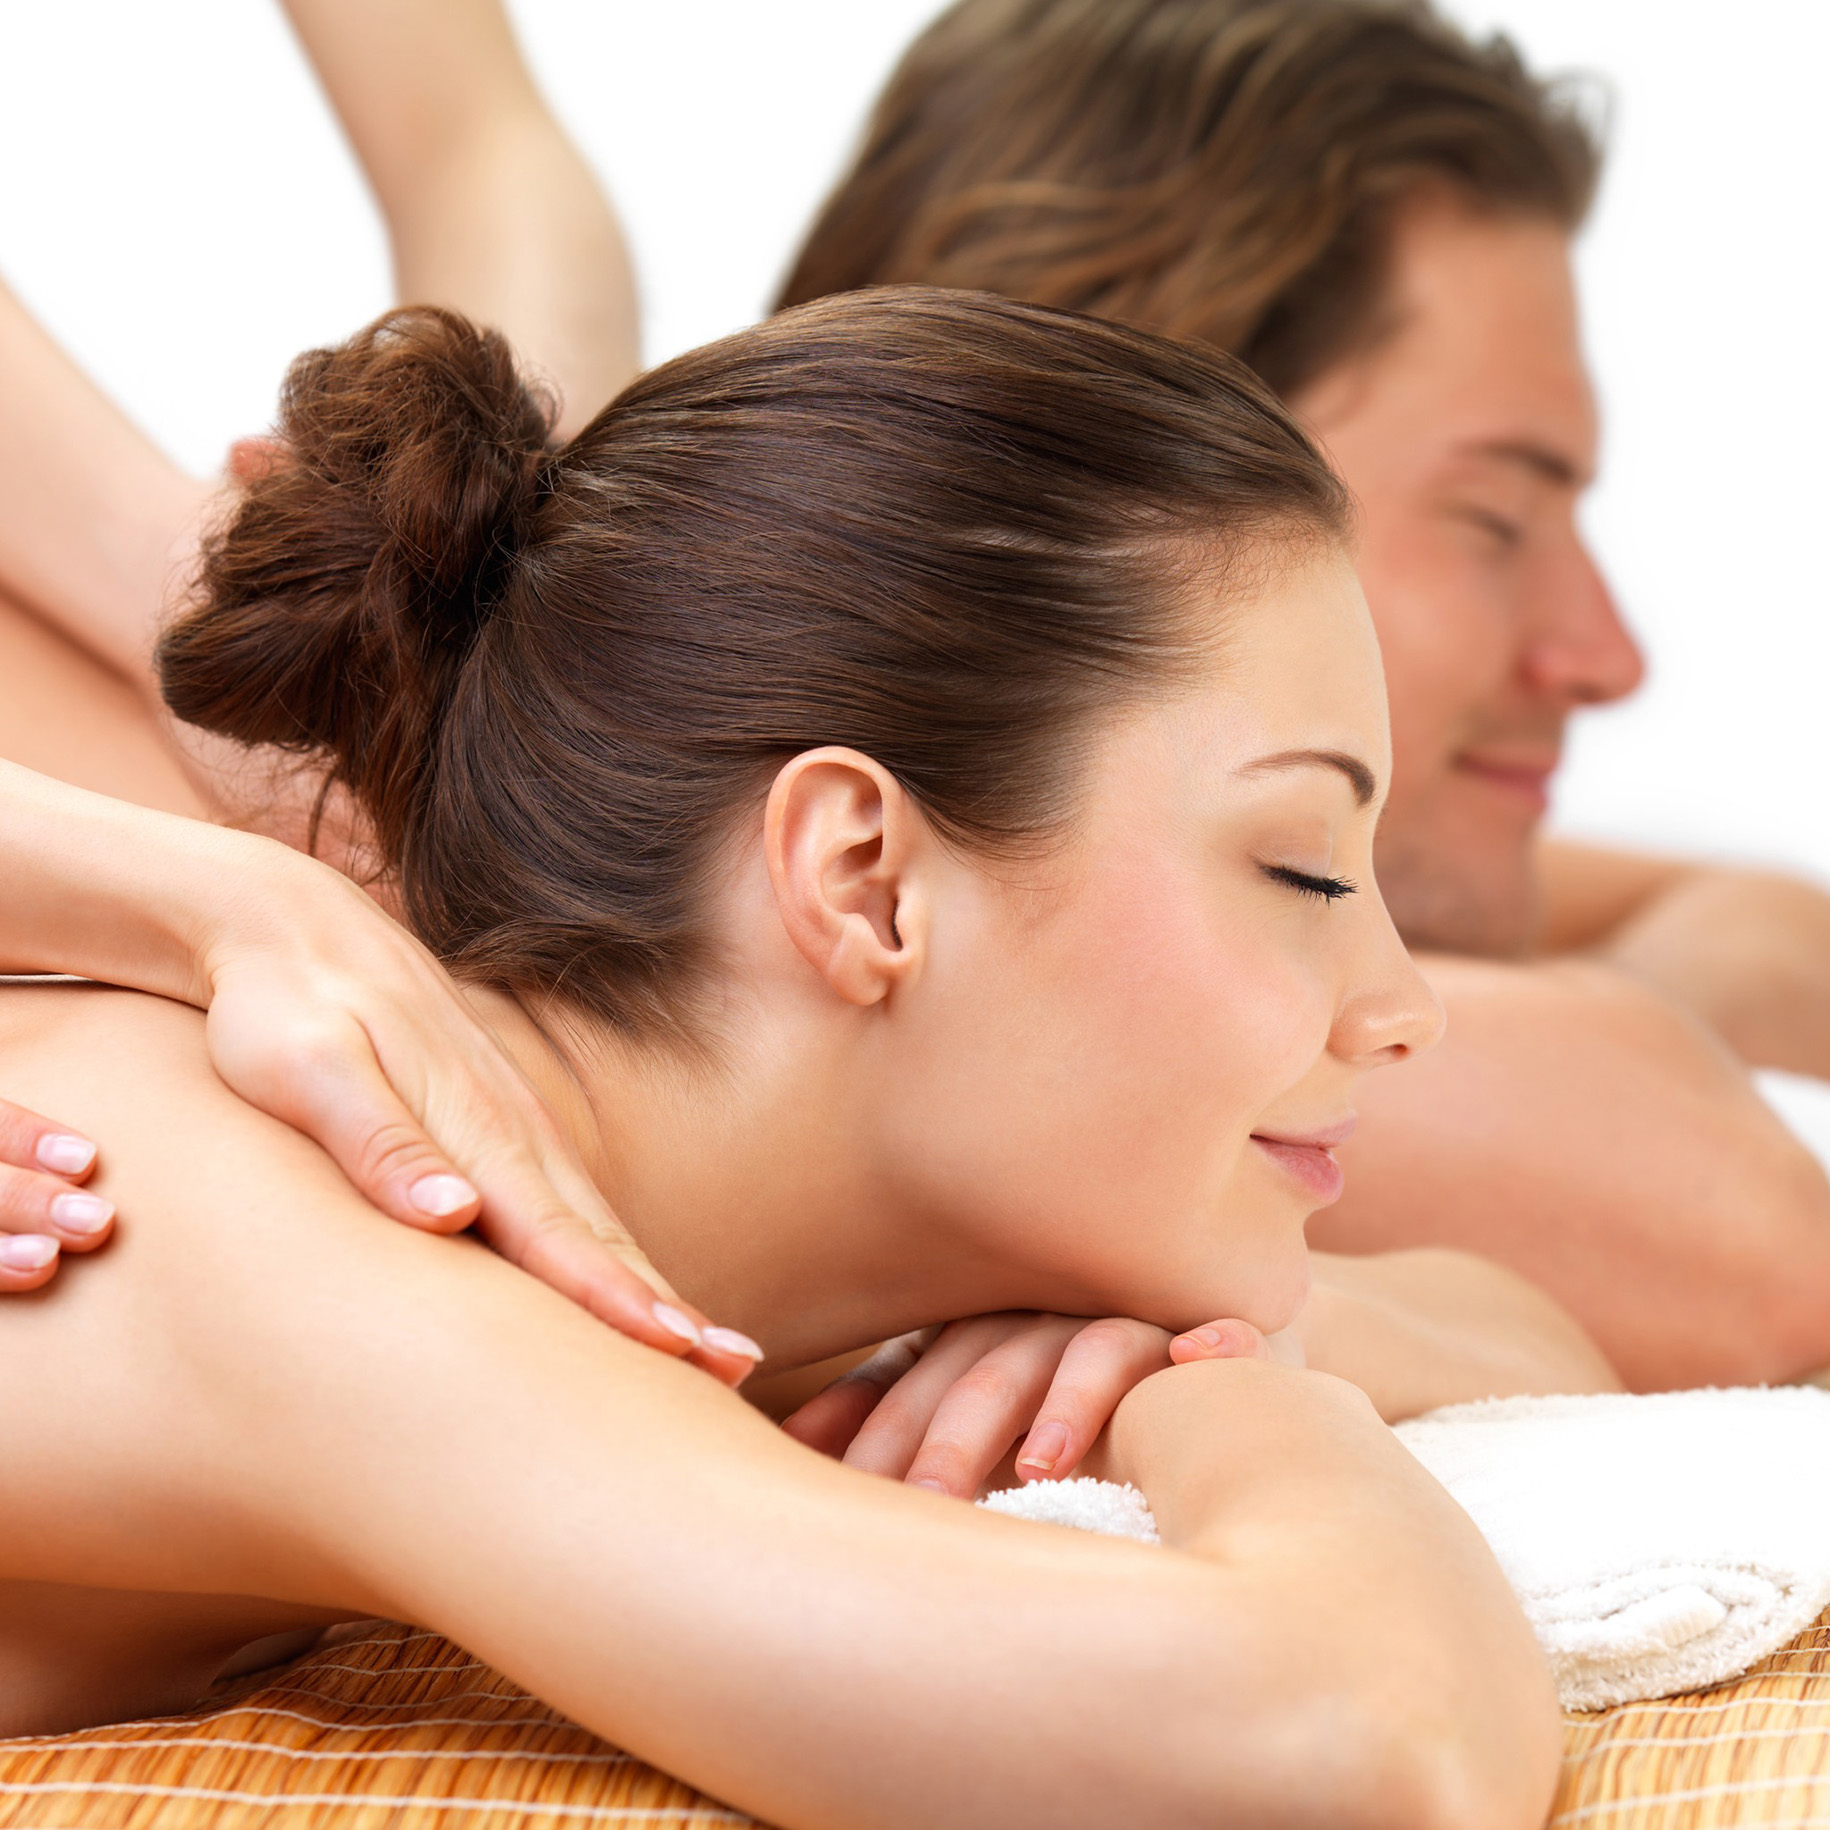 Romantic New England Inn offers romance package that includes massages from our Jackson NH spa for two.